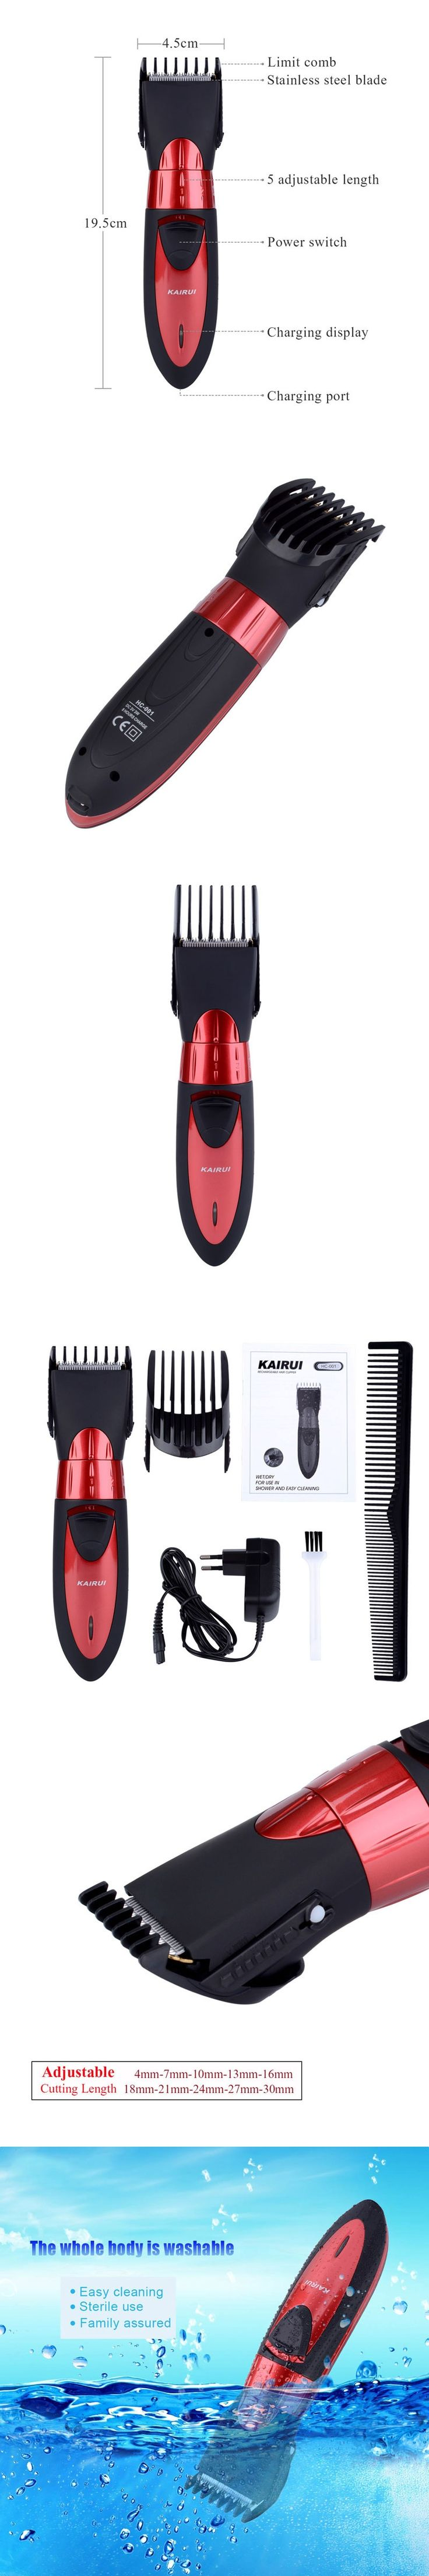 Professional Waterproof Electric Hair Clipper Rechargeable Hair Trimmer 220-240V Beard Trimmer Cutting Machine Men Haircut